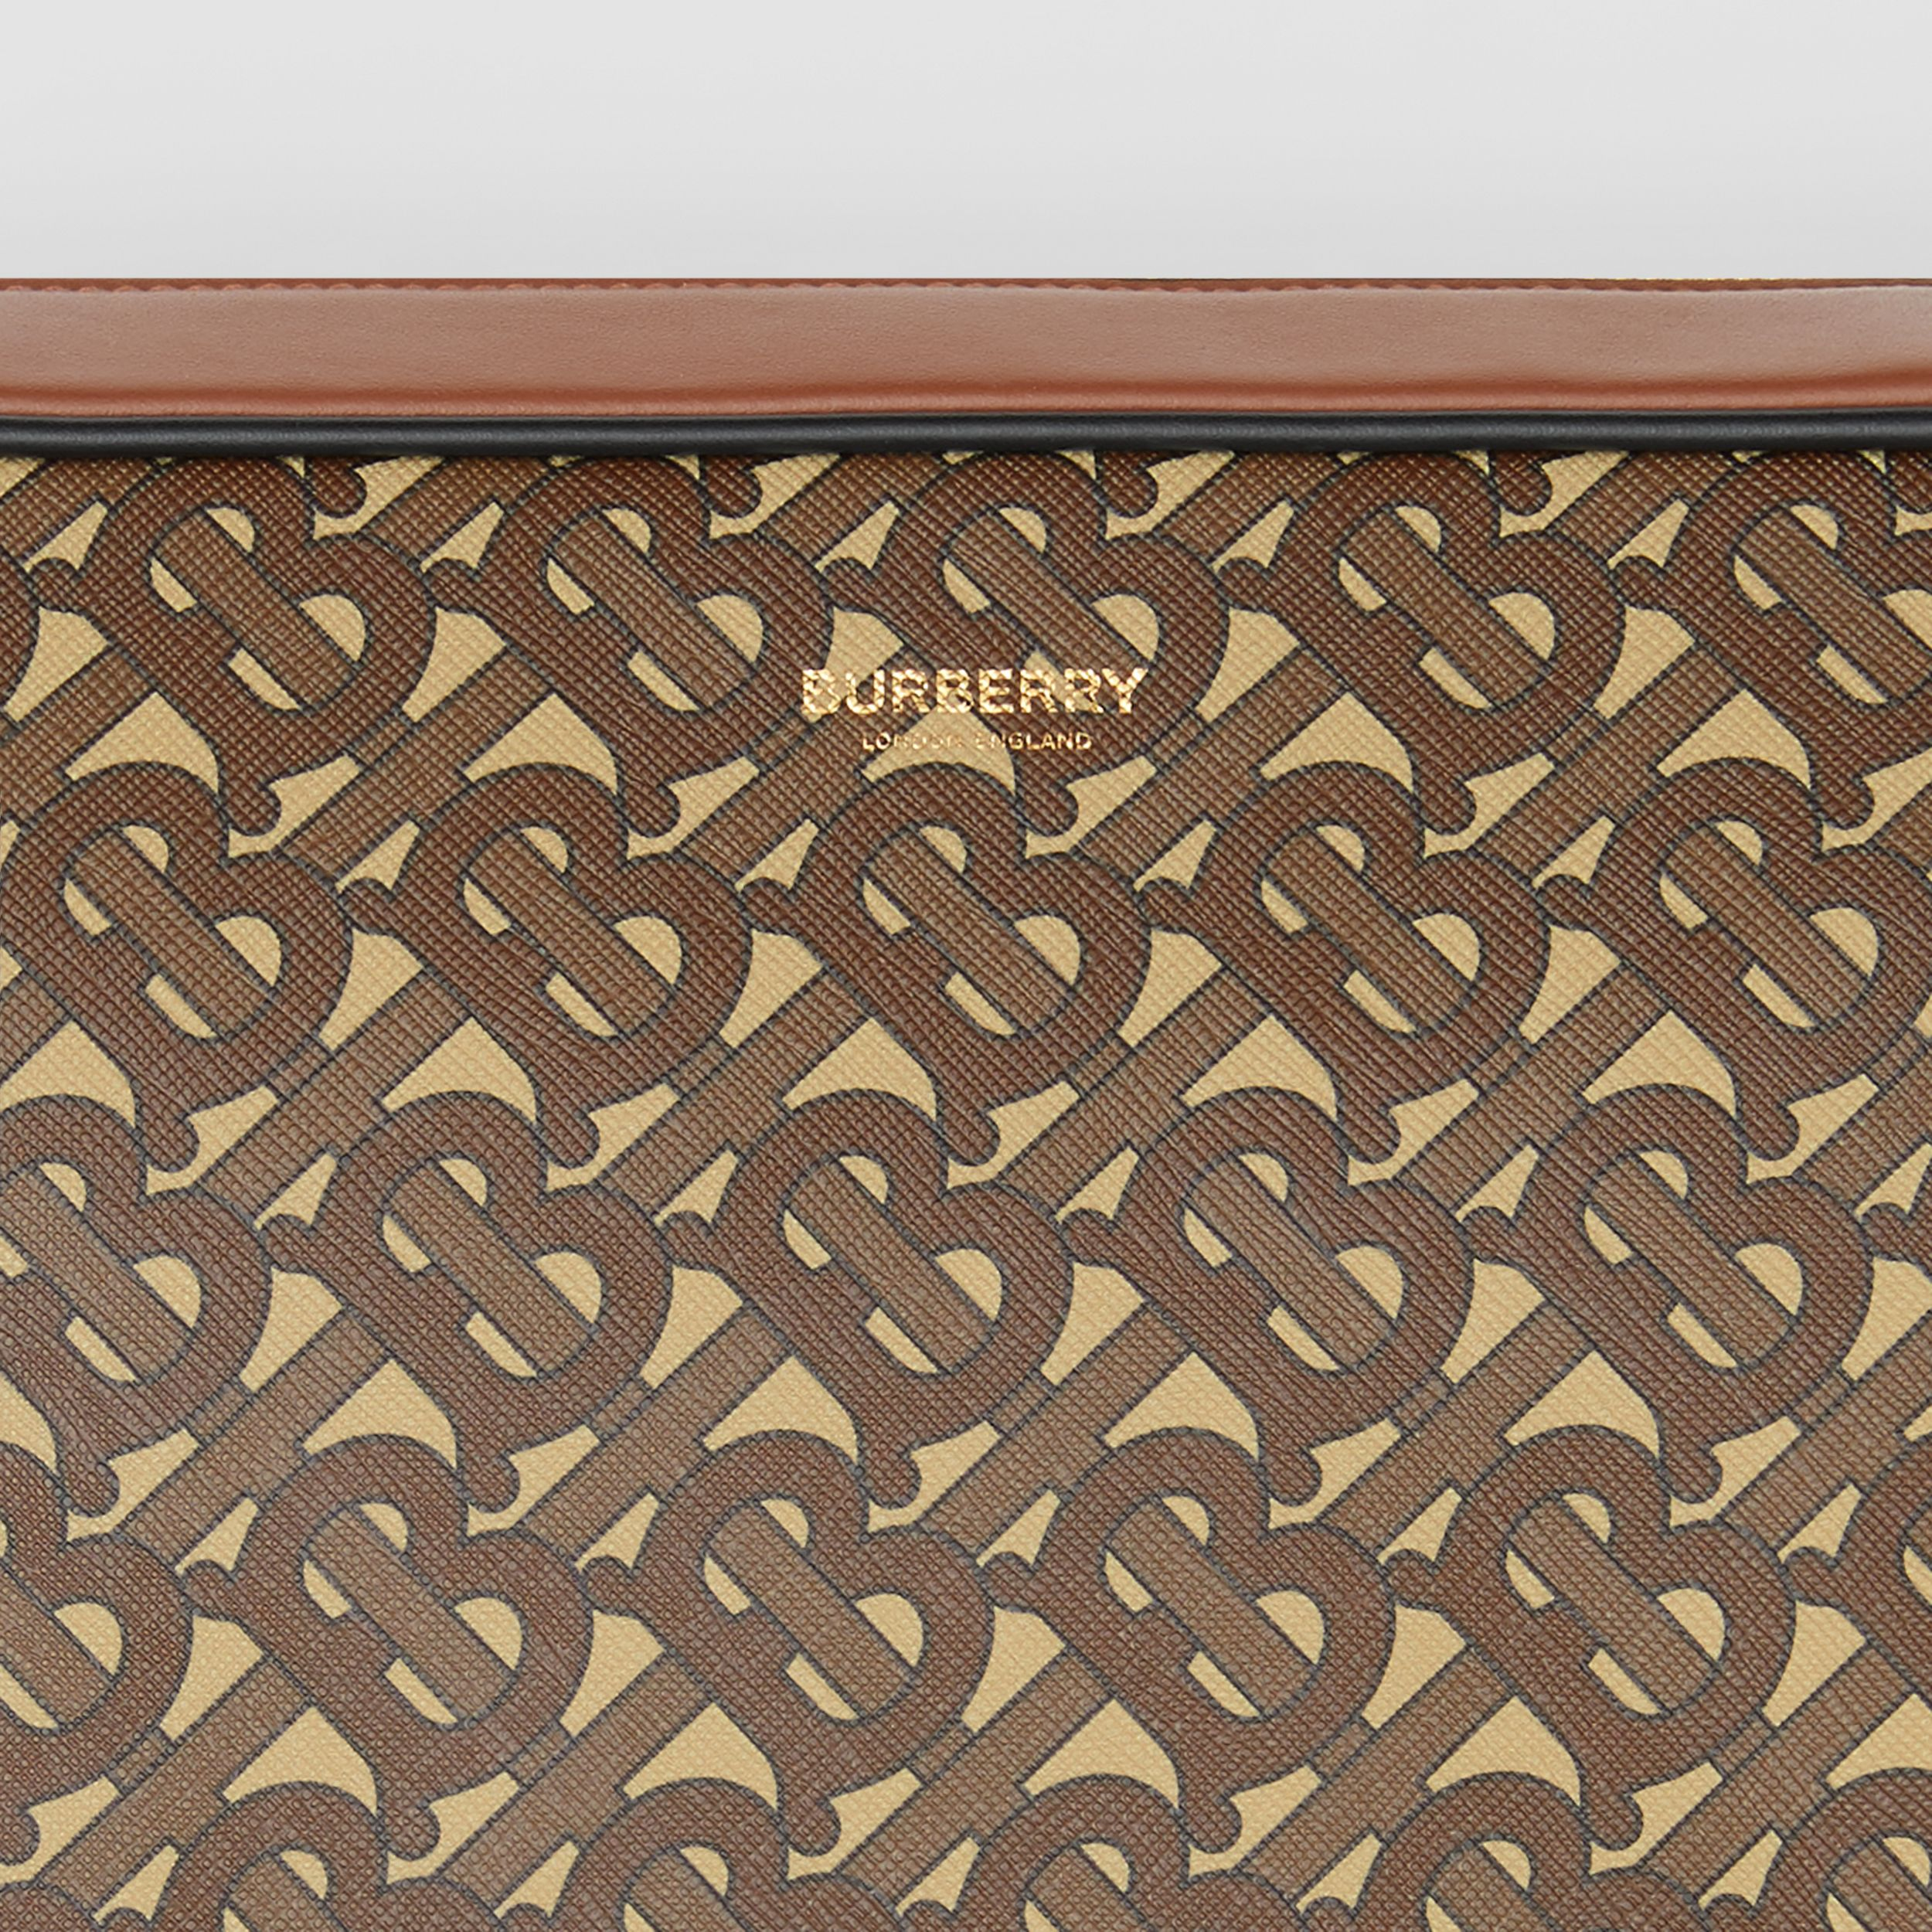 Monogram Print E-canvas Messenger Bag in Bridle Brown - Men | Burberry Canada - 2